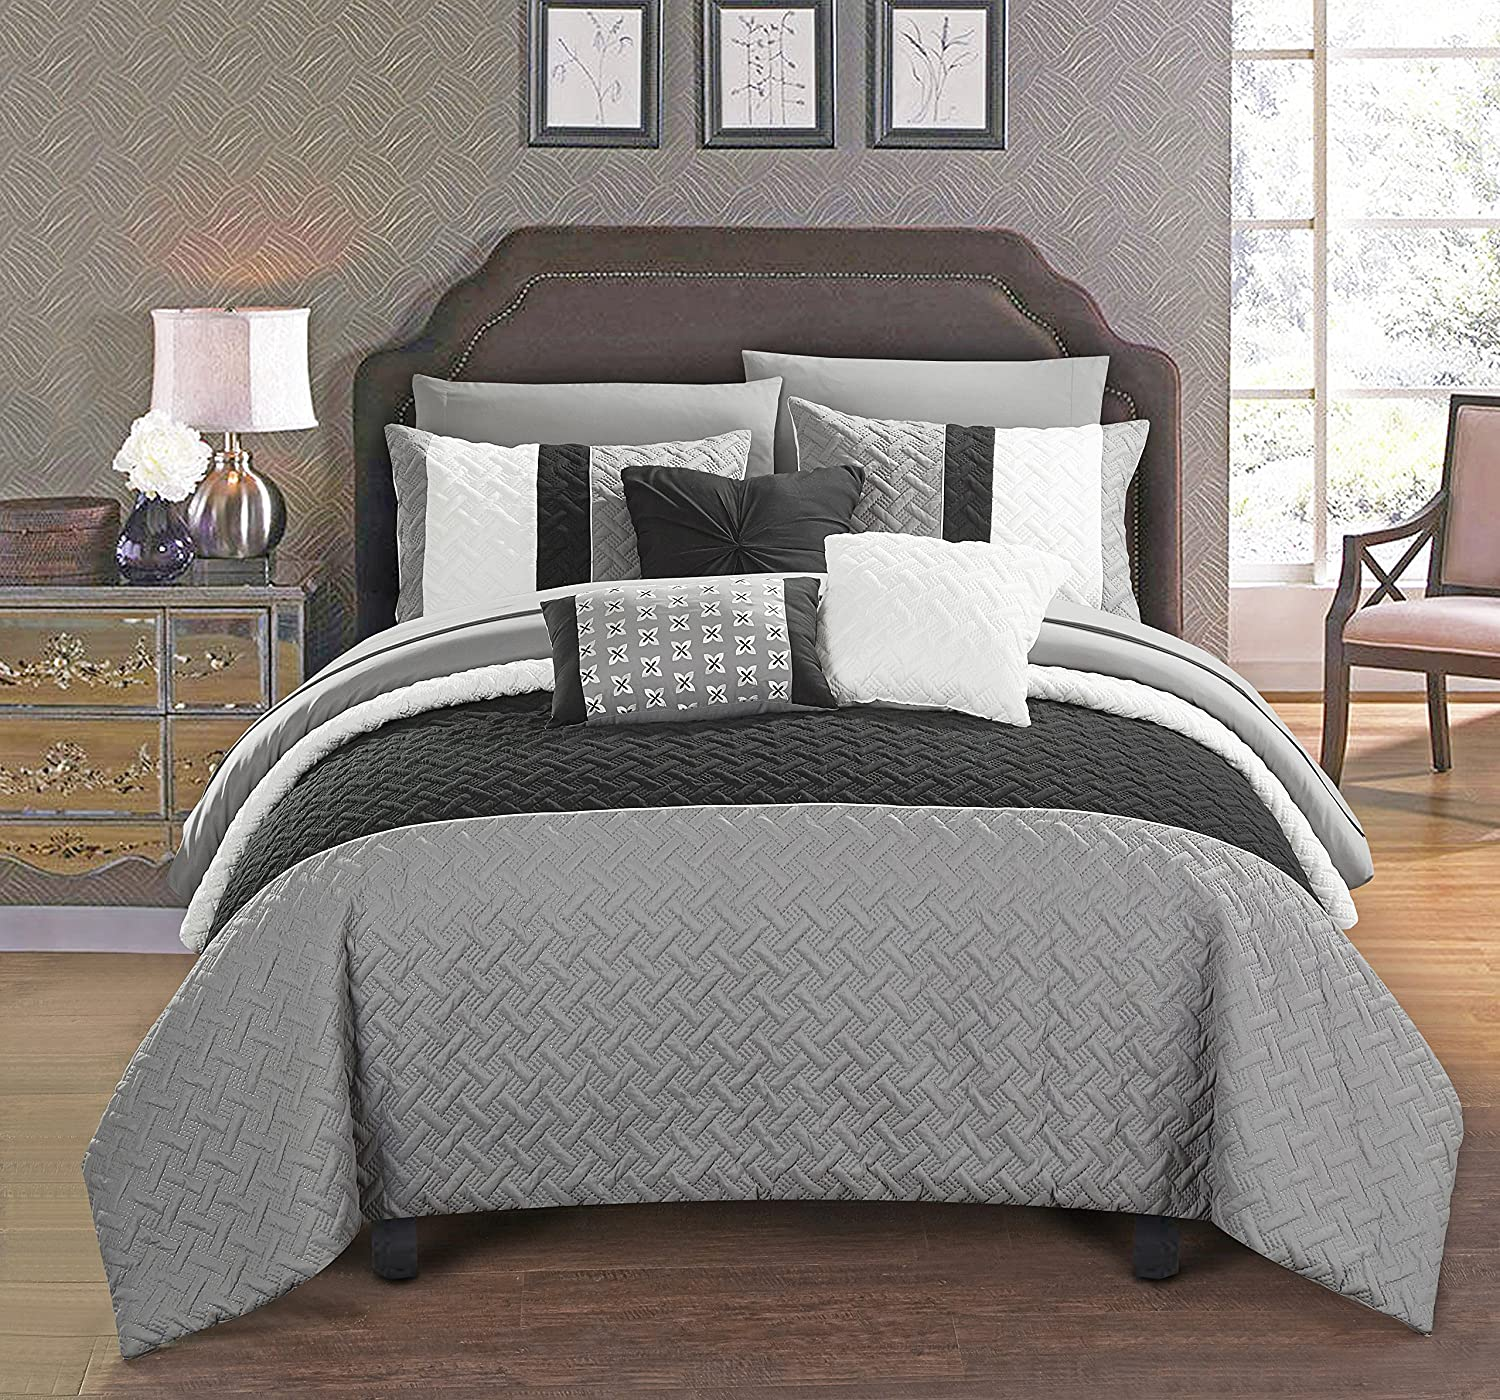 Chic Home Osnat 10 Piece Color Block Quilted Embroidered Design Bag Bedding – Sheets Decorative Pillows Shams Included Comforter Set, King, Grey